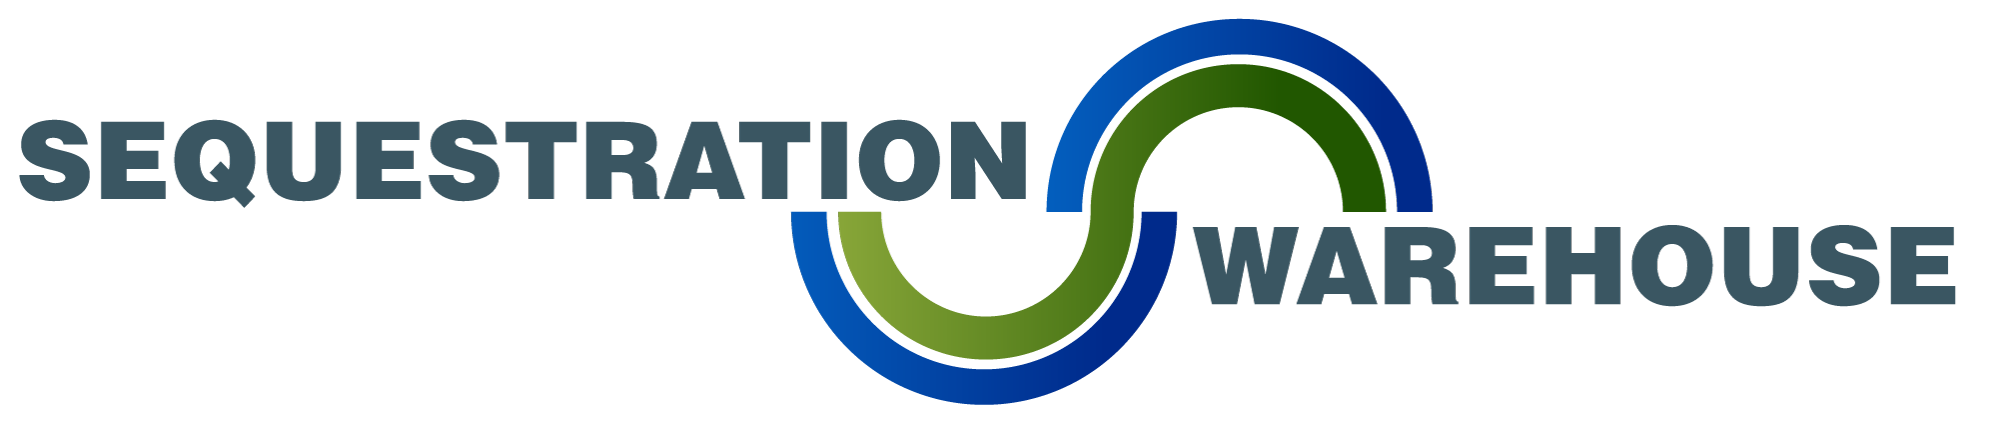 SequestrationWarehouse-Logo-(2000x423)